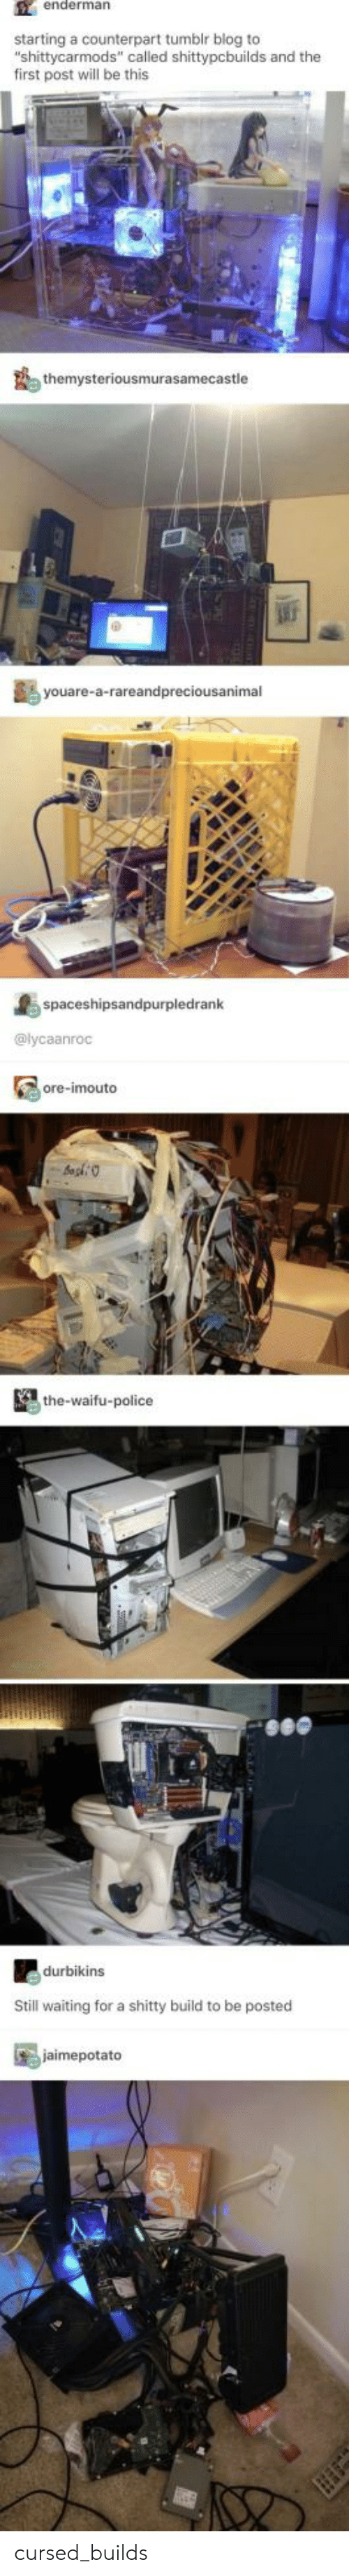 """Police, Tumblr, and Blog: enderman  starting a counterpart tumblr blog to  """"shittycarmods"""" called shittypcbuilds and the  first post will be this  themysteriousmurasamecastle  youare-a-rareandpreciousanimal  spaceshipsandpurpledrank  @lycaanroc  ore-imouto  the-waifu-police  durbikins  Still waiting for a shitty build to be posted  jaimepotato cursed_builds"""